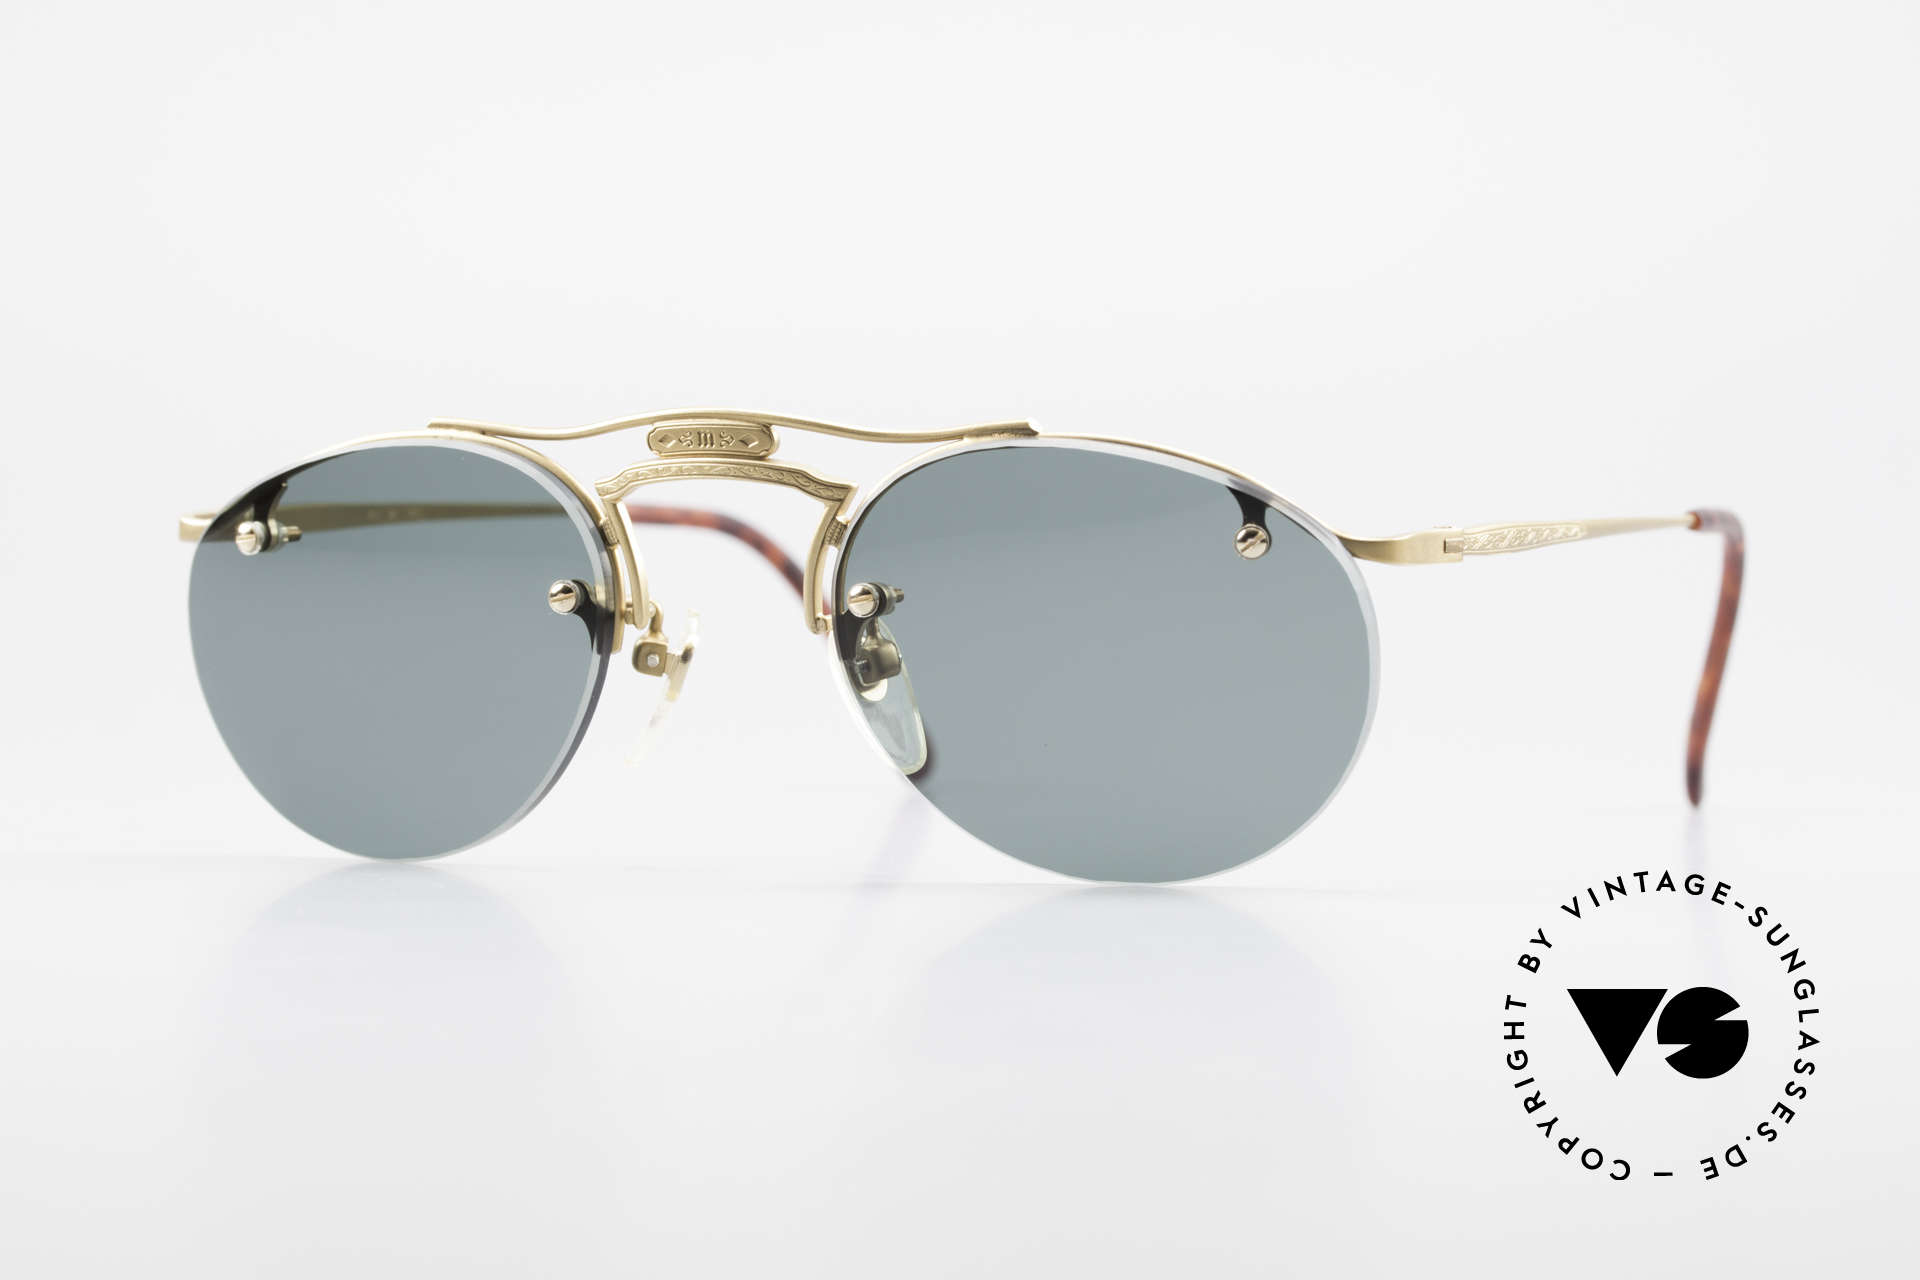 Matsuda 2823 Small Aviator Style Shades, vintage Matsuda sunglasses, unique SMALL aviator style, Made for Men and Women